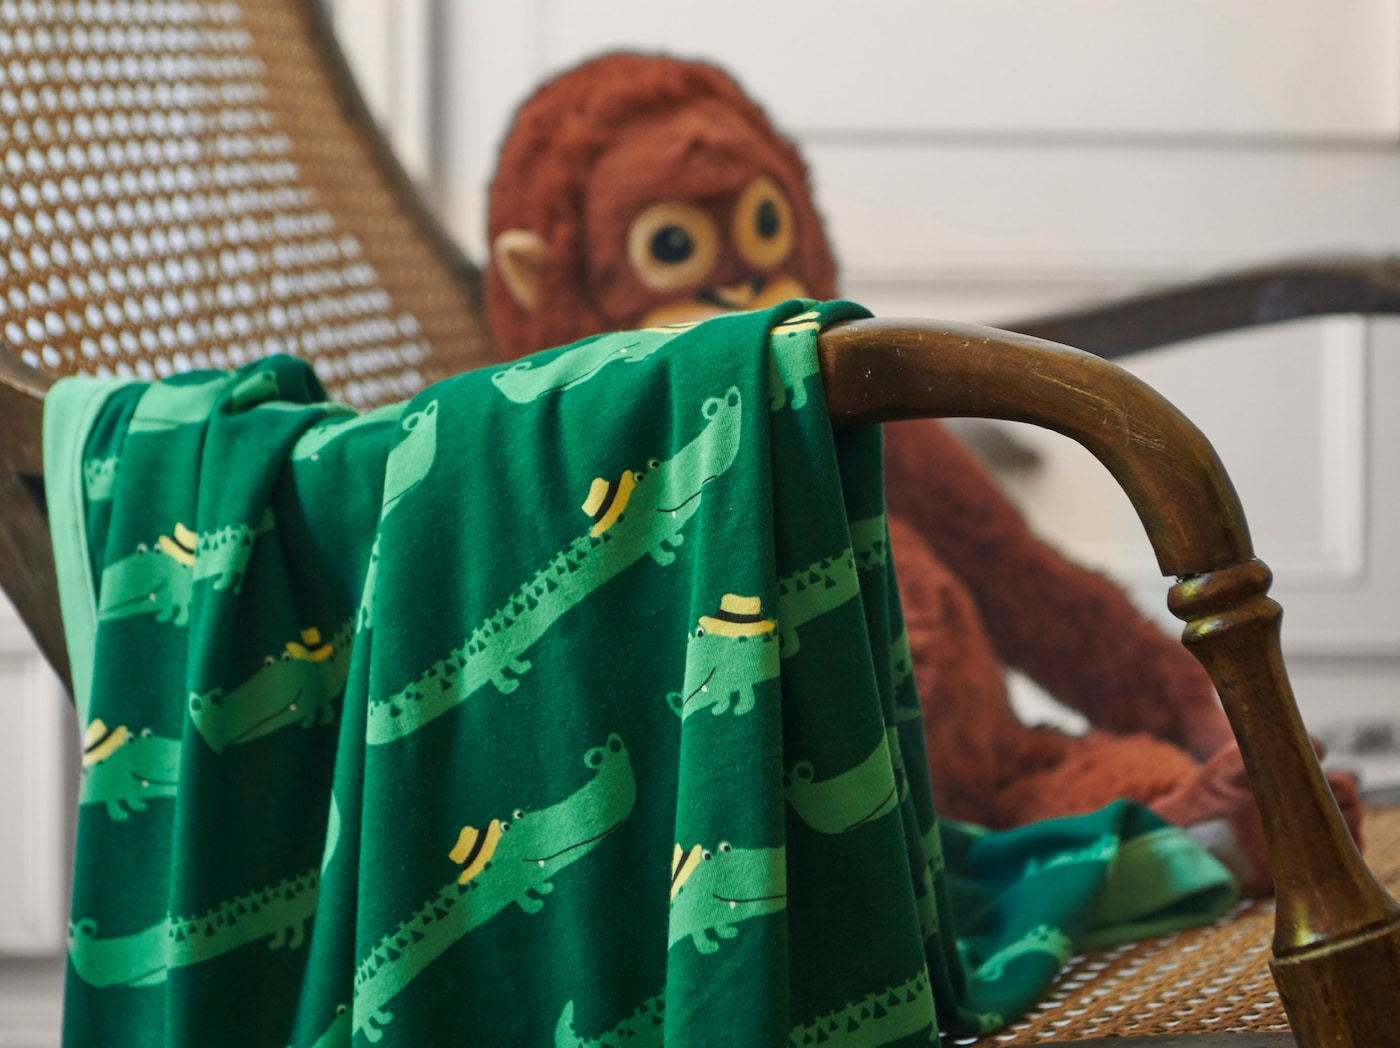 A close-up of RÖRANDE blanket with friendly crocodiles crawling across the green background, placed over a wicker chair.